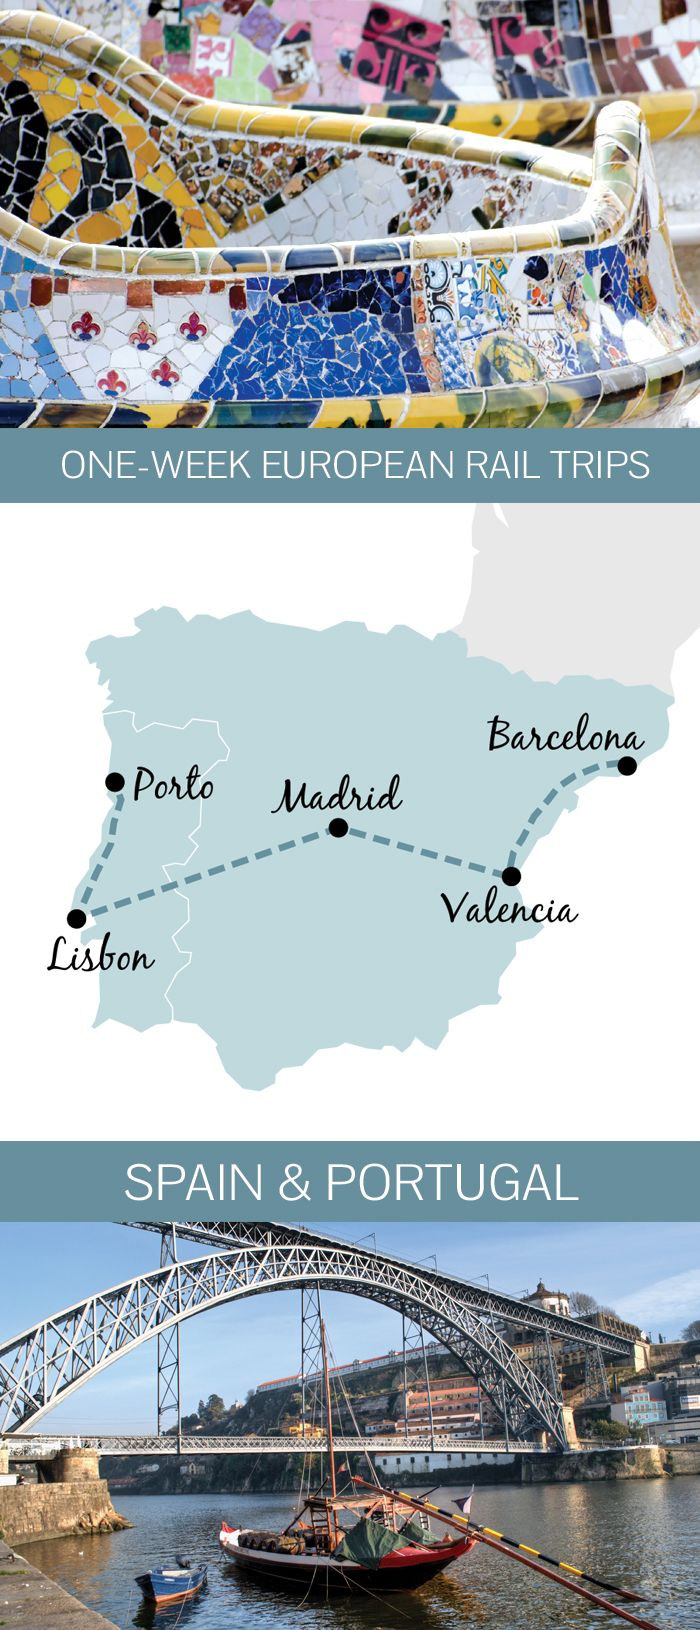 You don't need months to spare to see Europe by train – a one-week Spain and Portugal rail itinerary from Barcelona to Porto